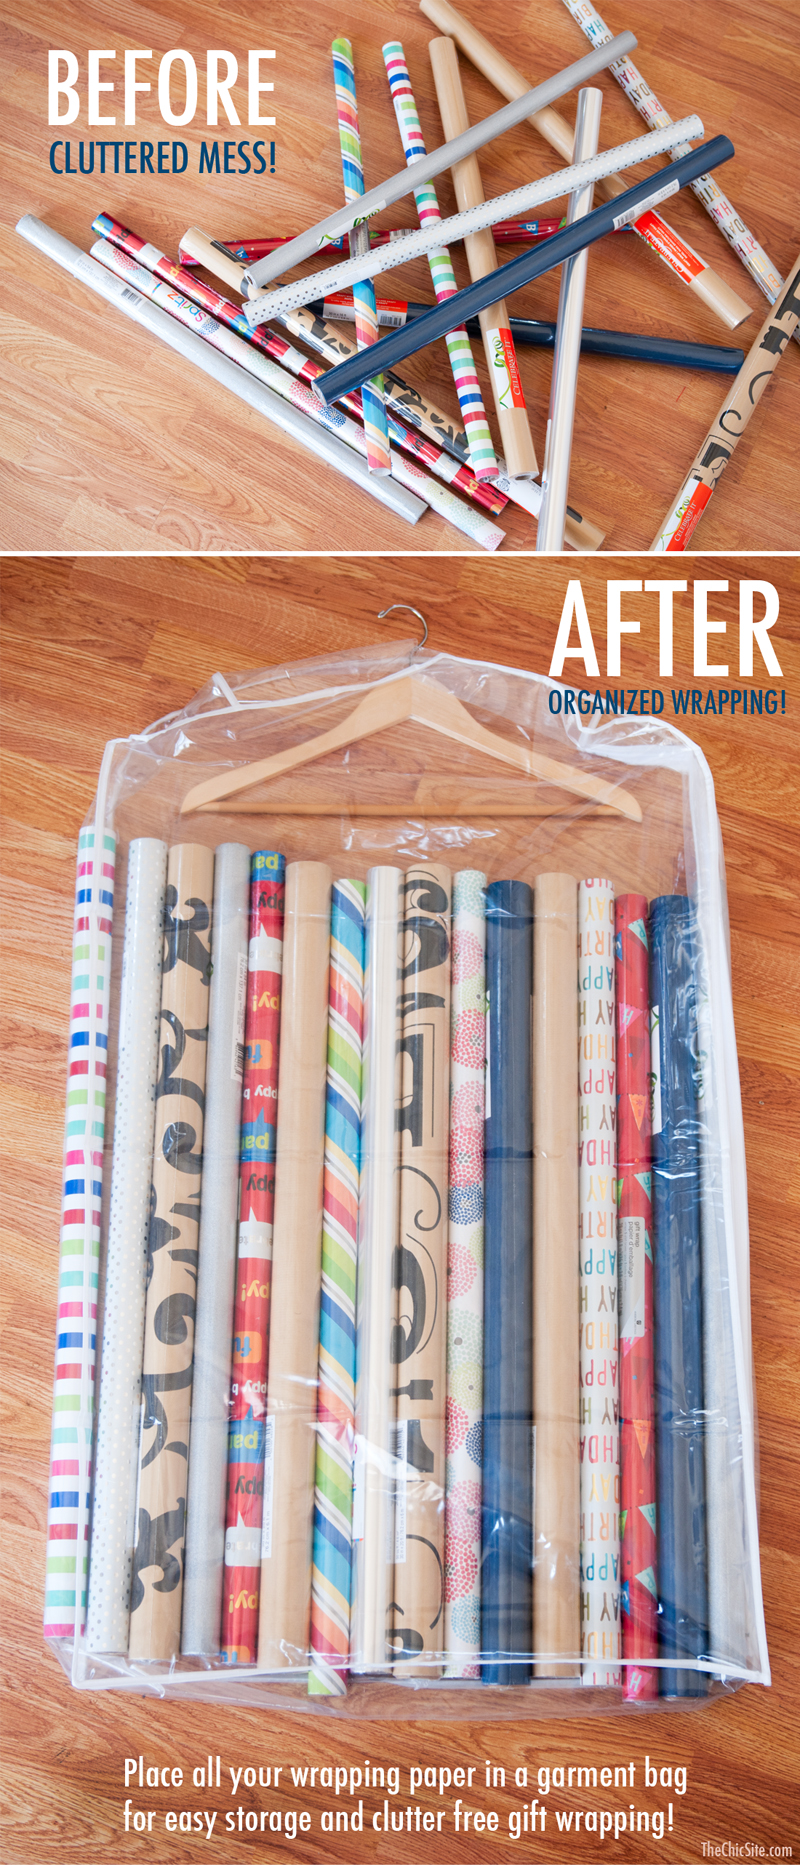 Storing rolls of gift wrapping paper in a clear garment bag is a smart holiday storage hack.